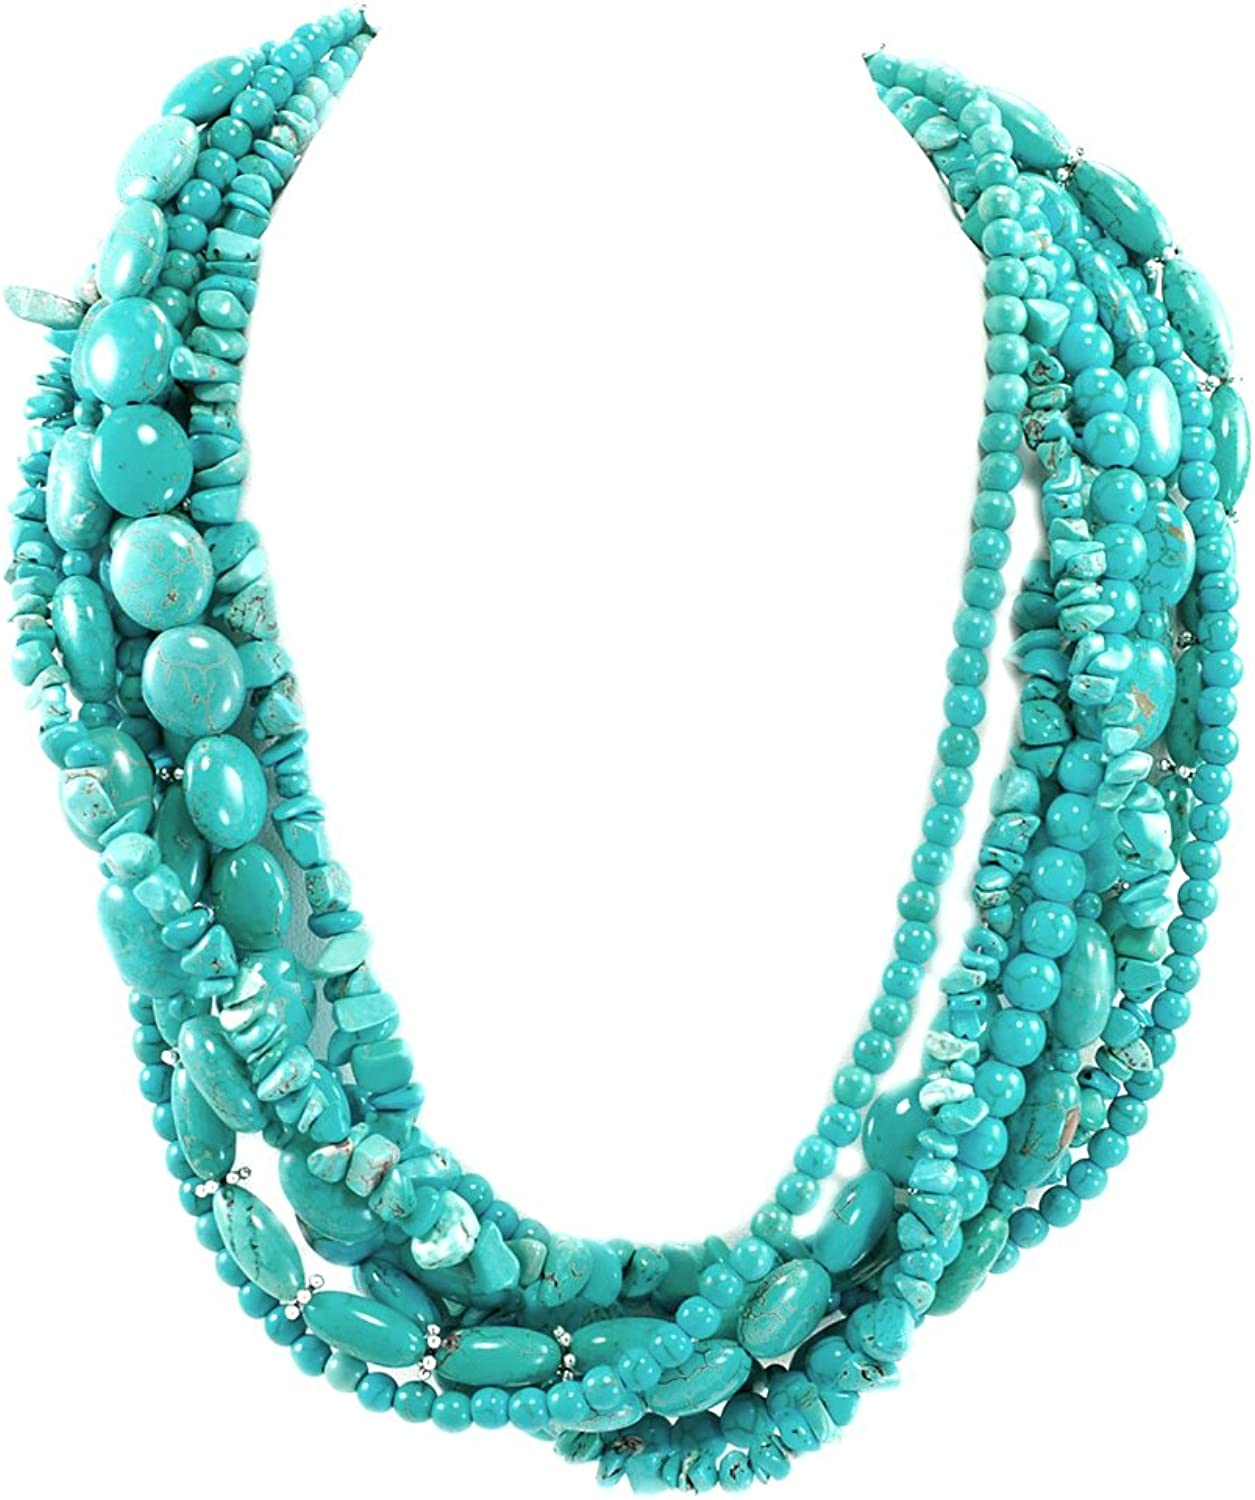 001 Multistrands bluee Magnesite Turquoise Beads Huge Necklace w Silver Plate.